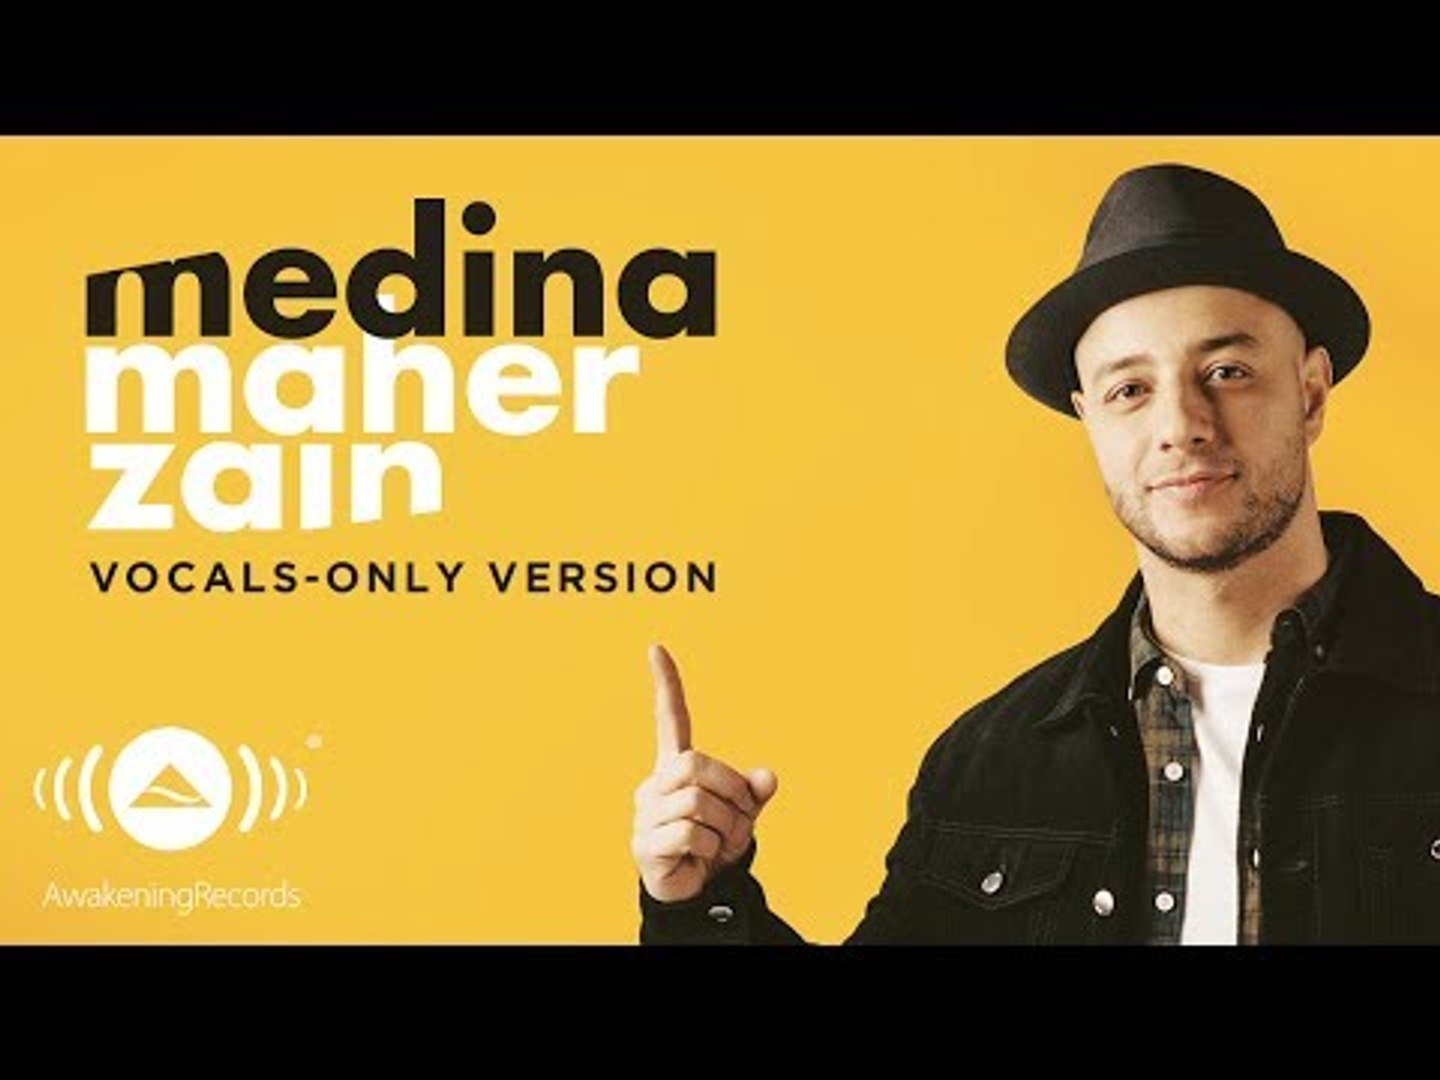 Maher Zain Medina ماهر زين Vocals Only بدون موسيقى Official Lyric Video Video Dailymotion